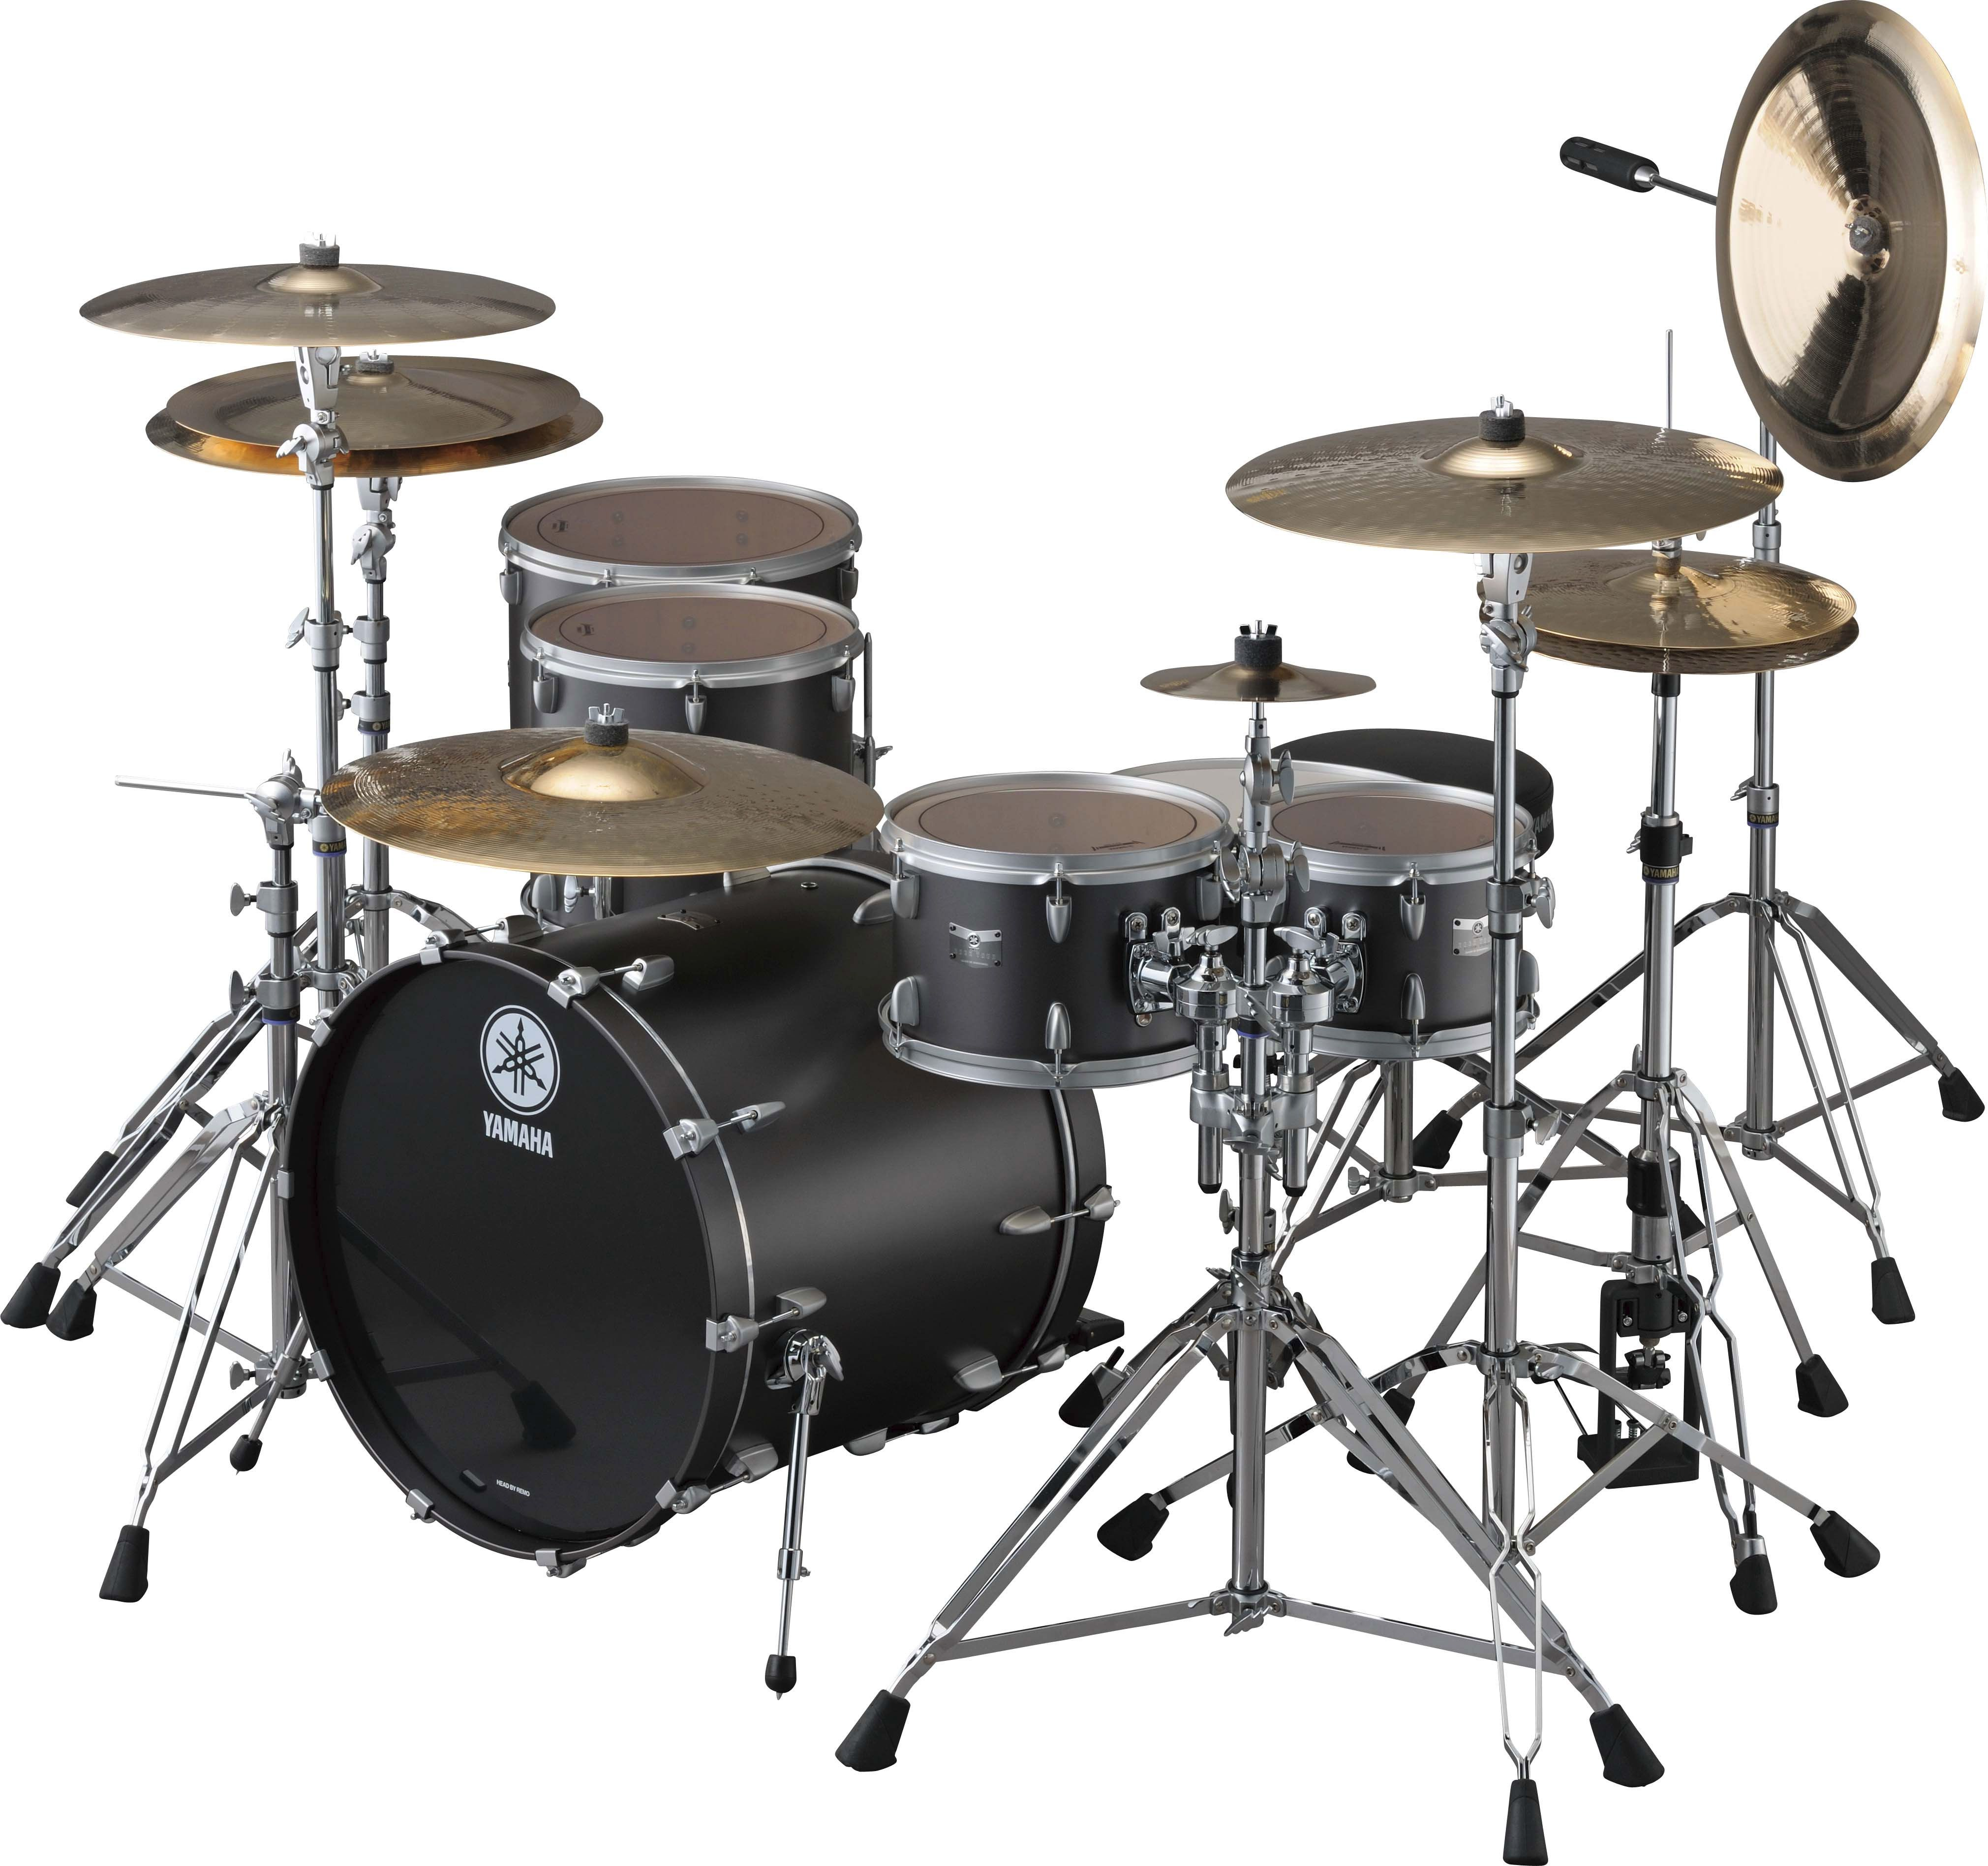 yamaha 39 s flat black rock tour drum set i 39 m not big on flat drums but this does look pretty. Black Bedroom Furniture Sets. Home Design Ideas